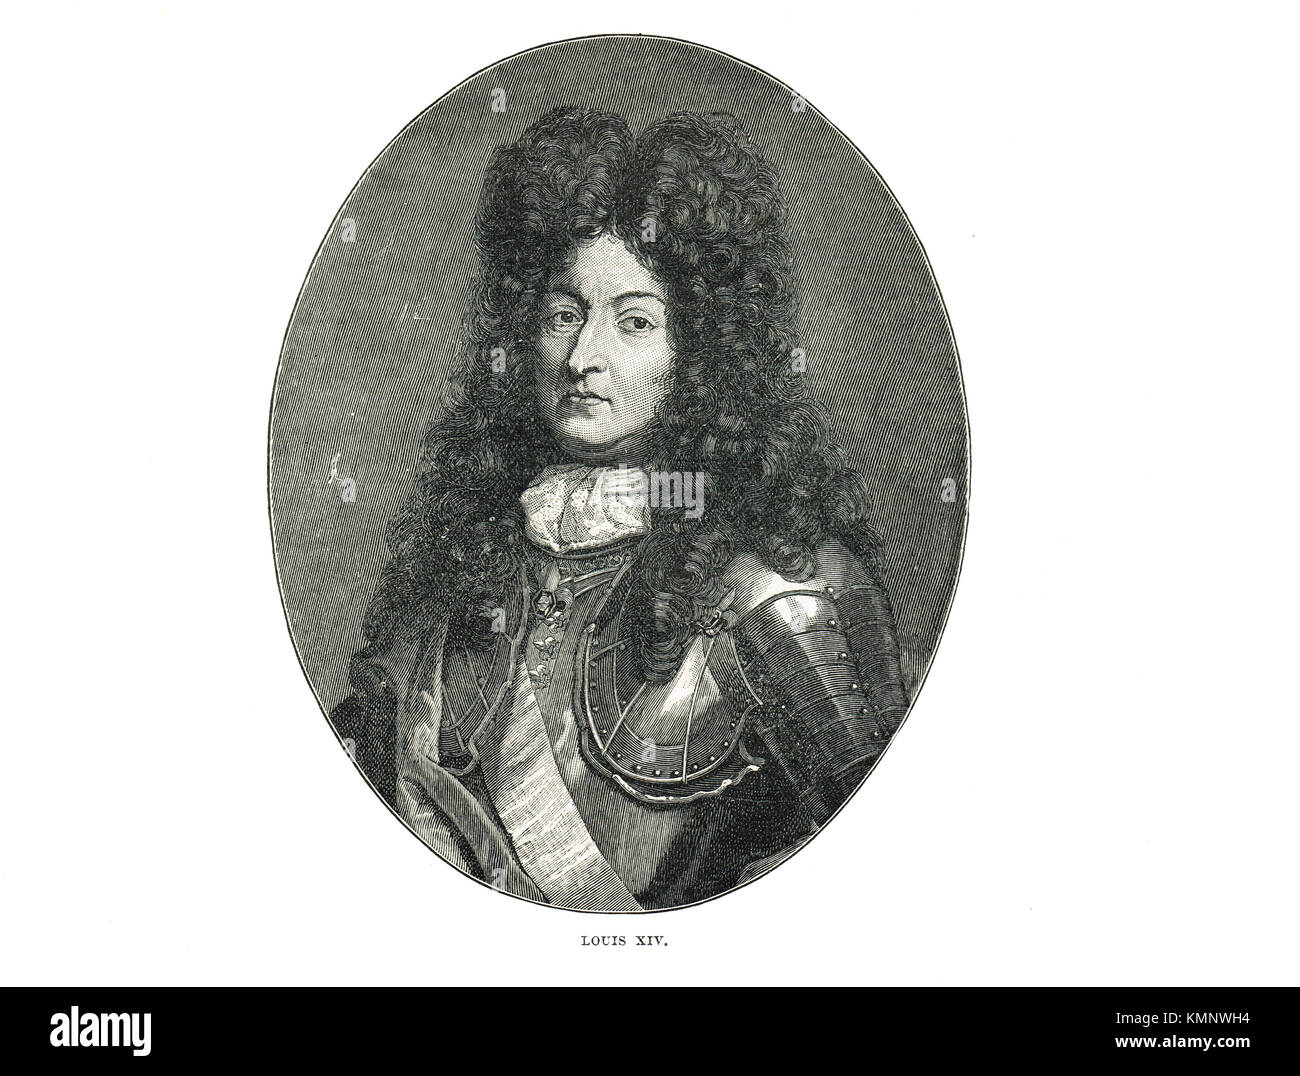 Louis XIV of France,  the Sun King (1638-1715), reigned 1643-1715 - Stock Image